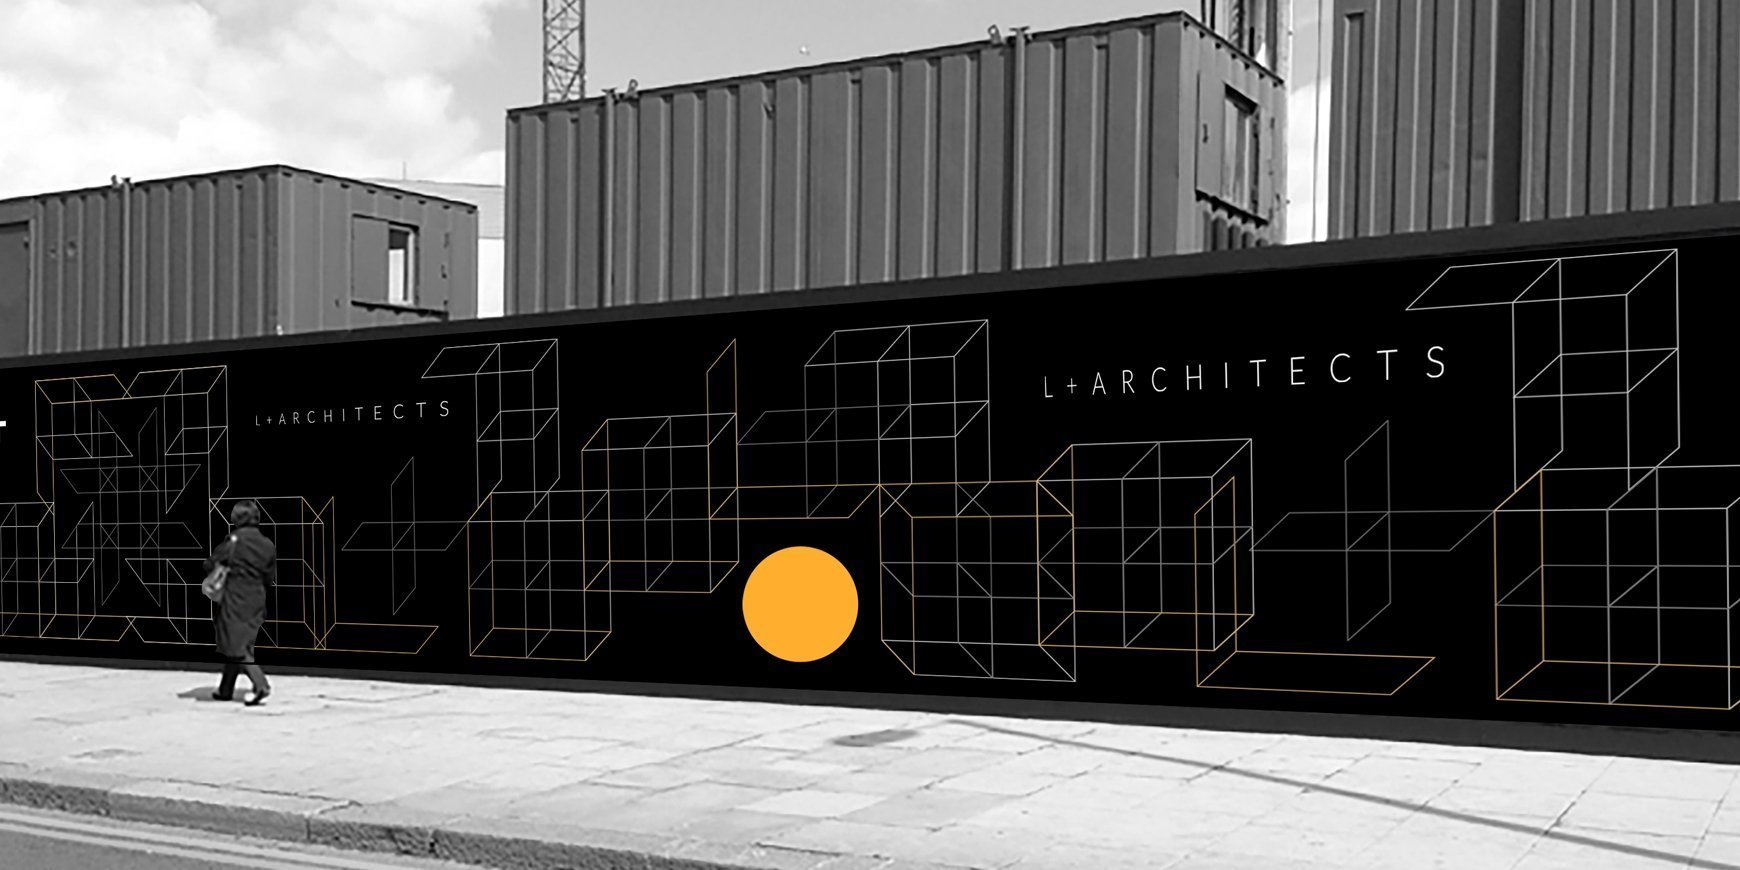 Branding and Digital work for L+Architects